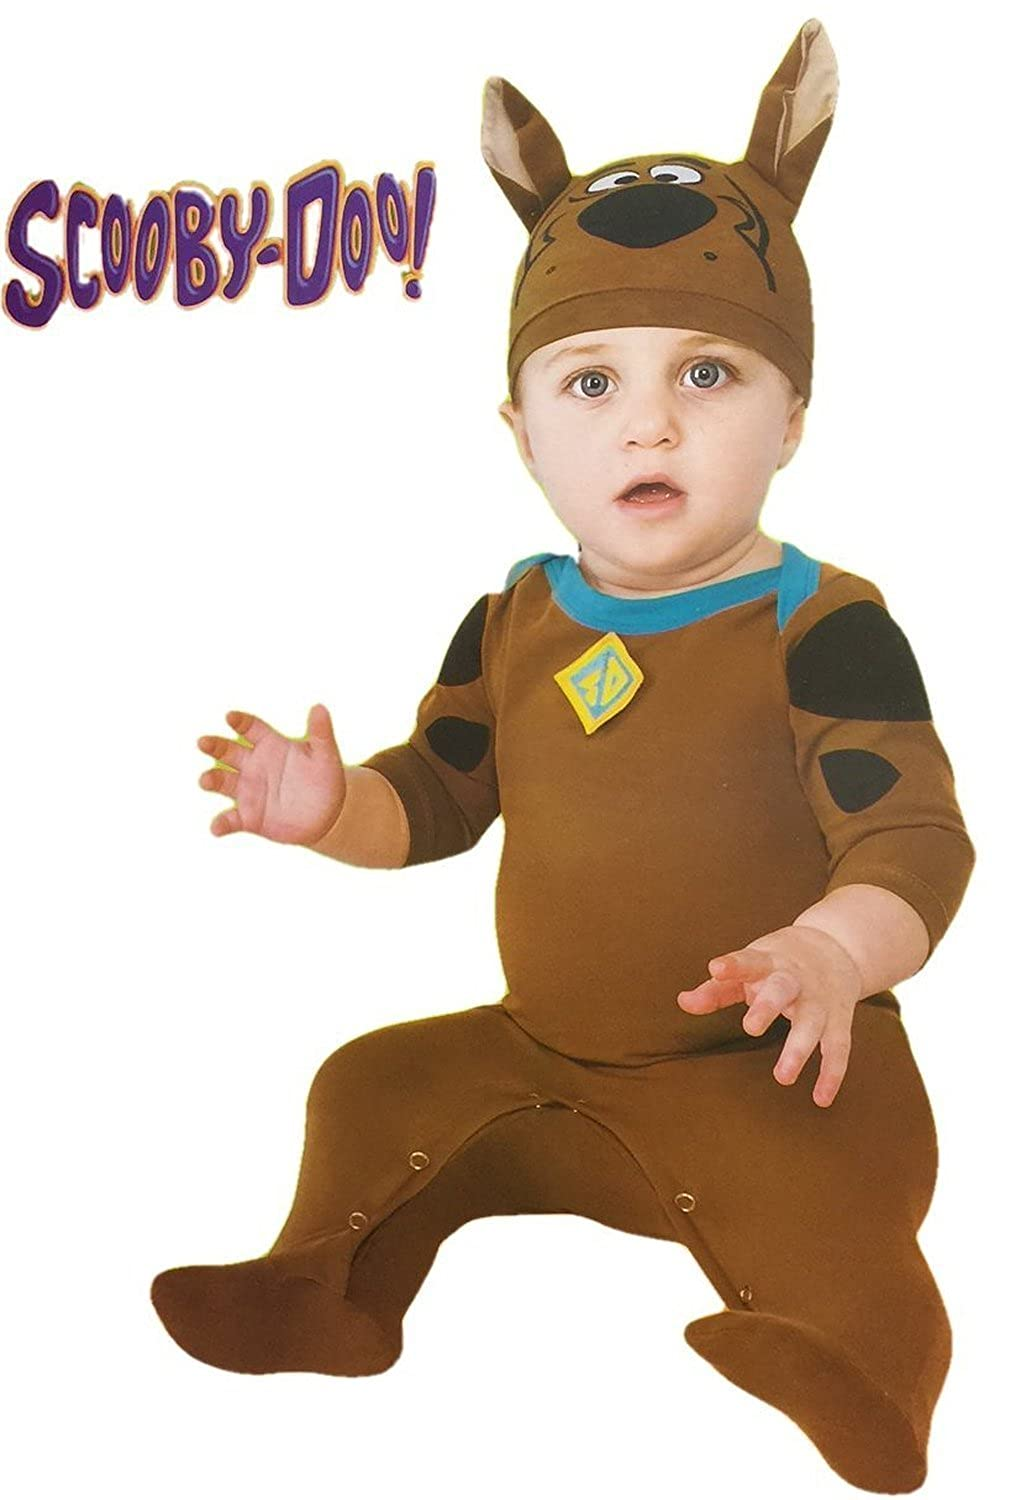 13e5c405a391 Amazon.com  Scooby-doo Romper with Collar and Hat Costumn (6-12 Mo)   Clothing